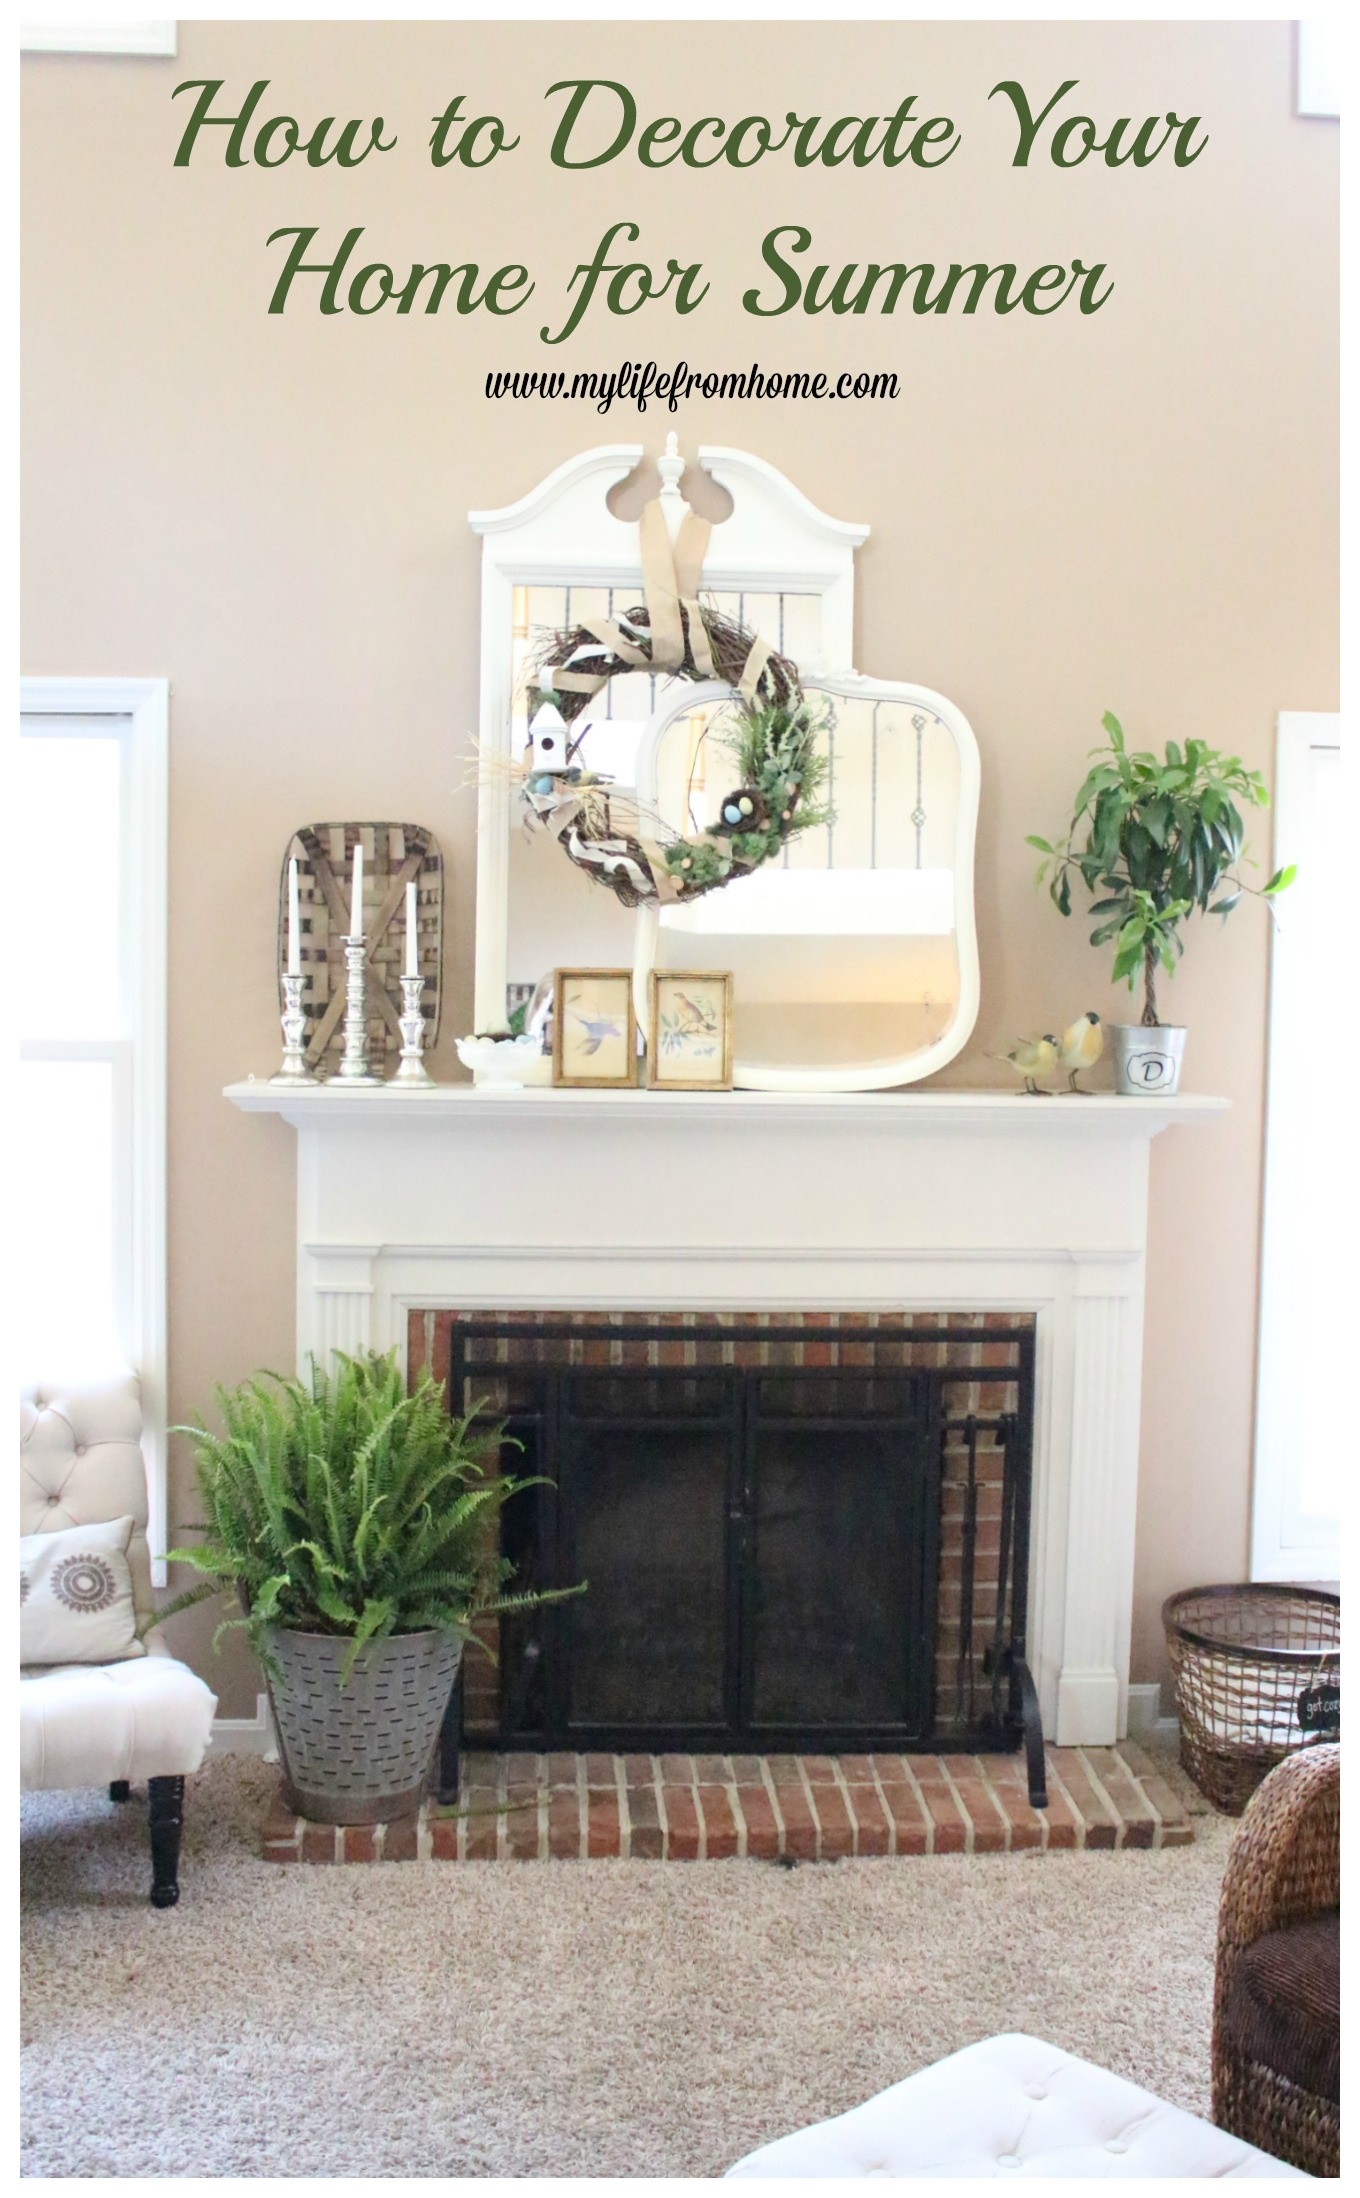 How to decorate your home for summer by www.mylifefromhome.com